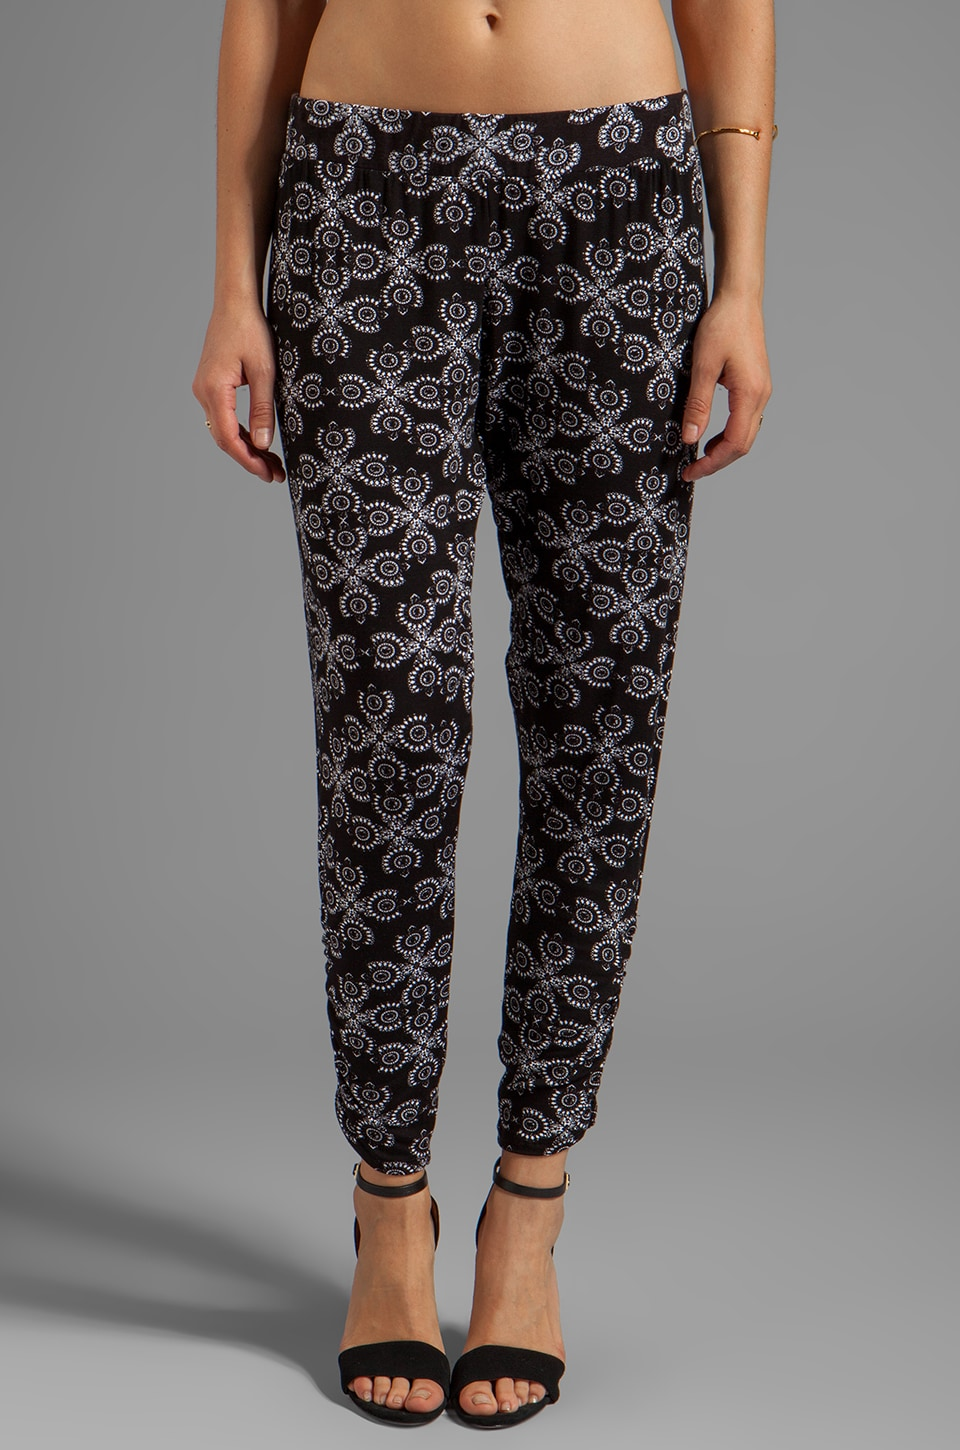 Michael Lauren Pablo Pant Print in Black